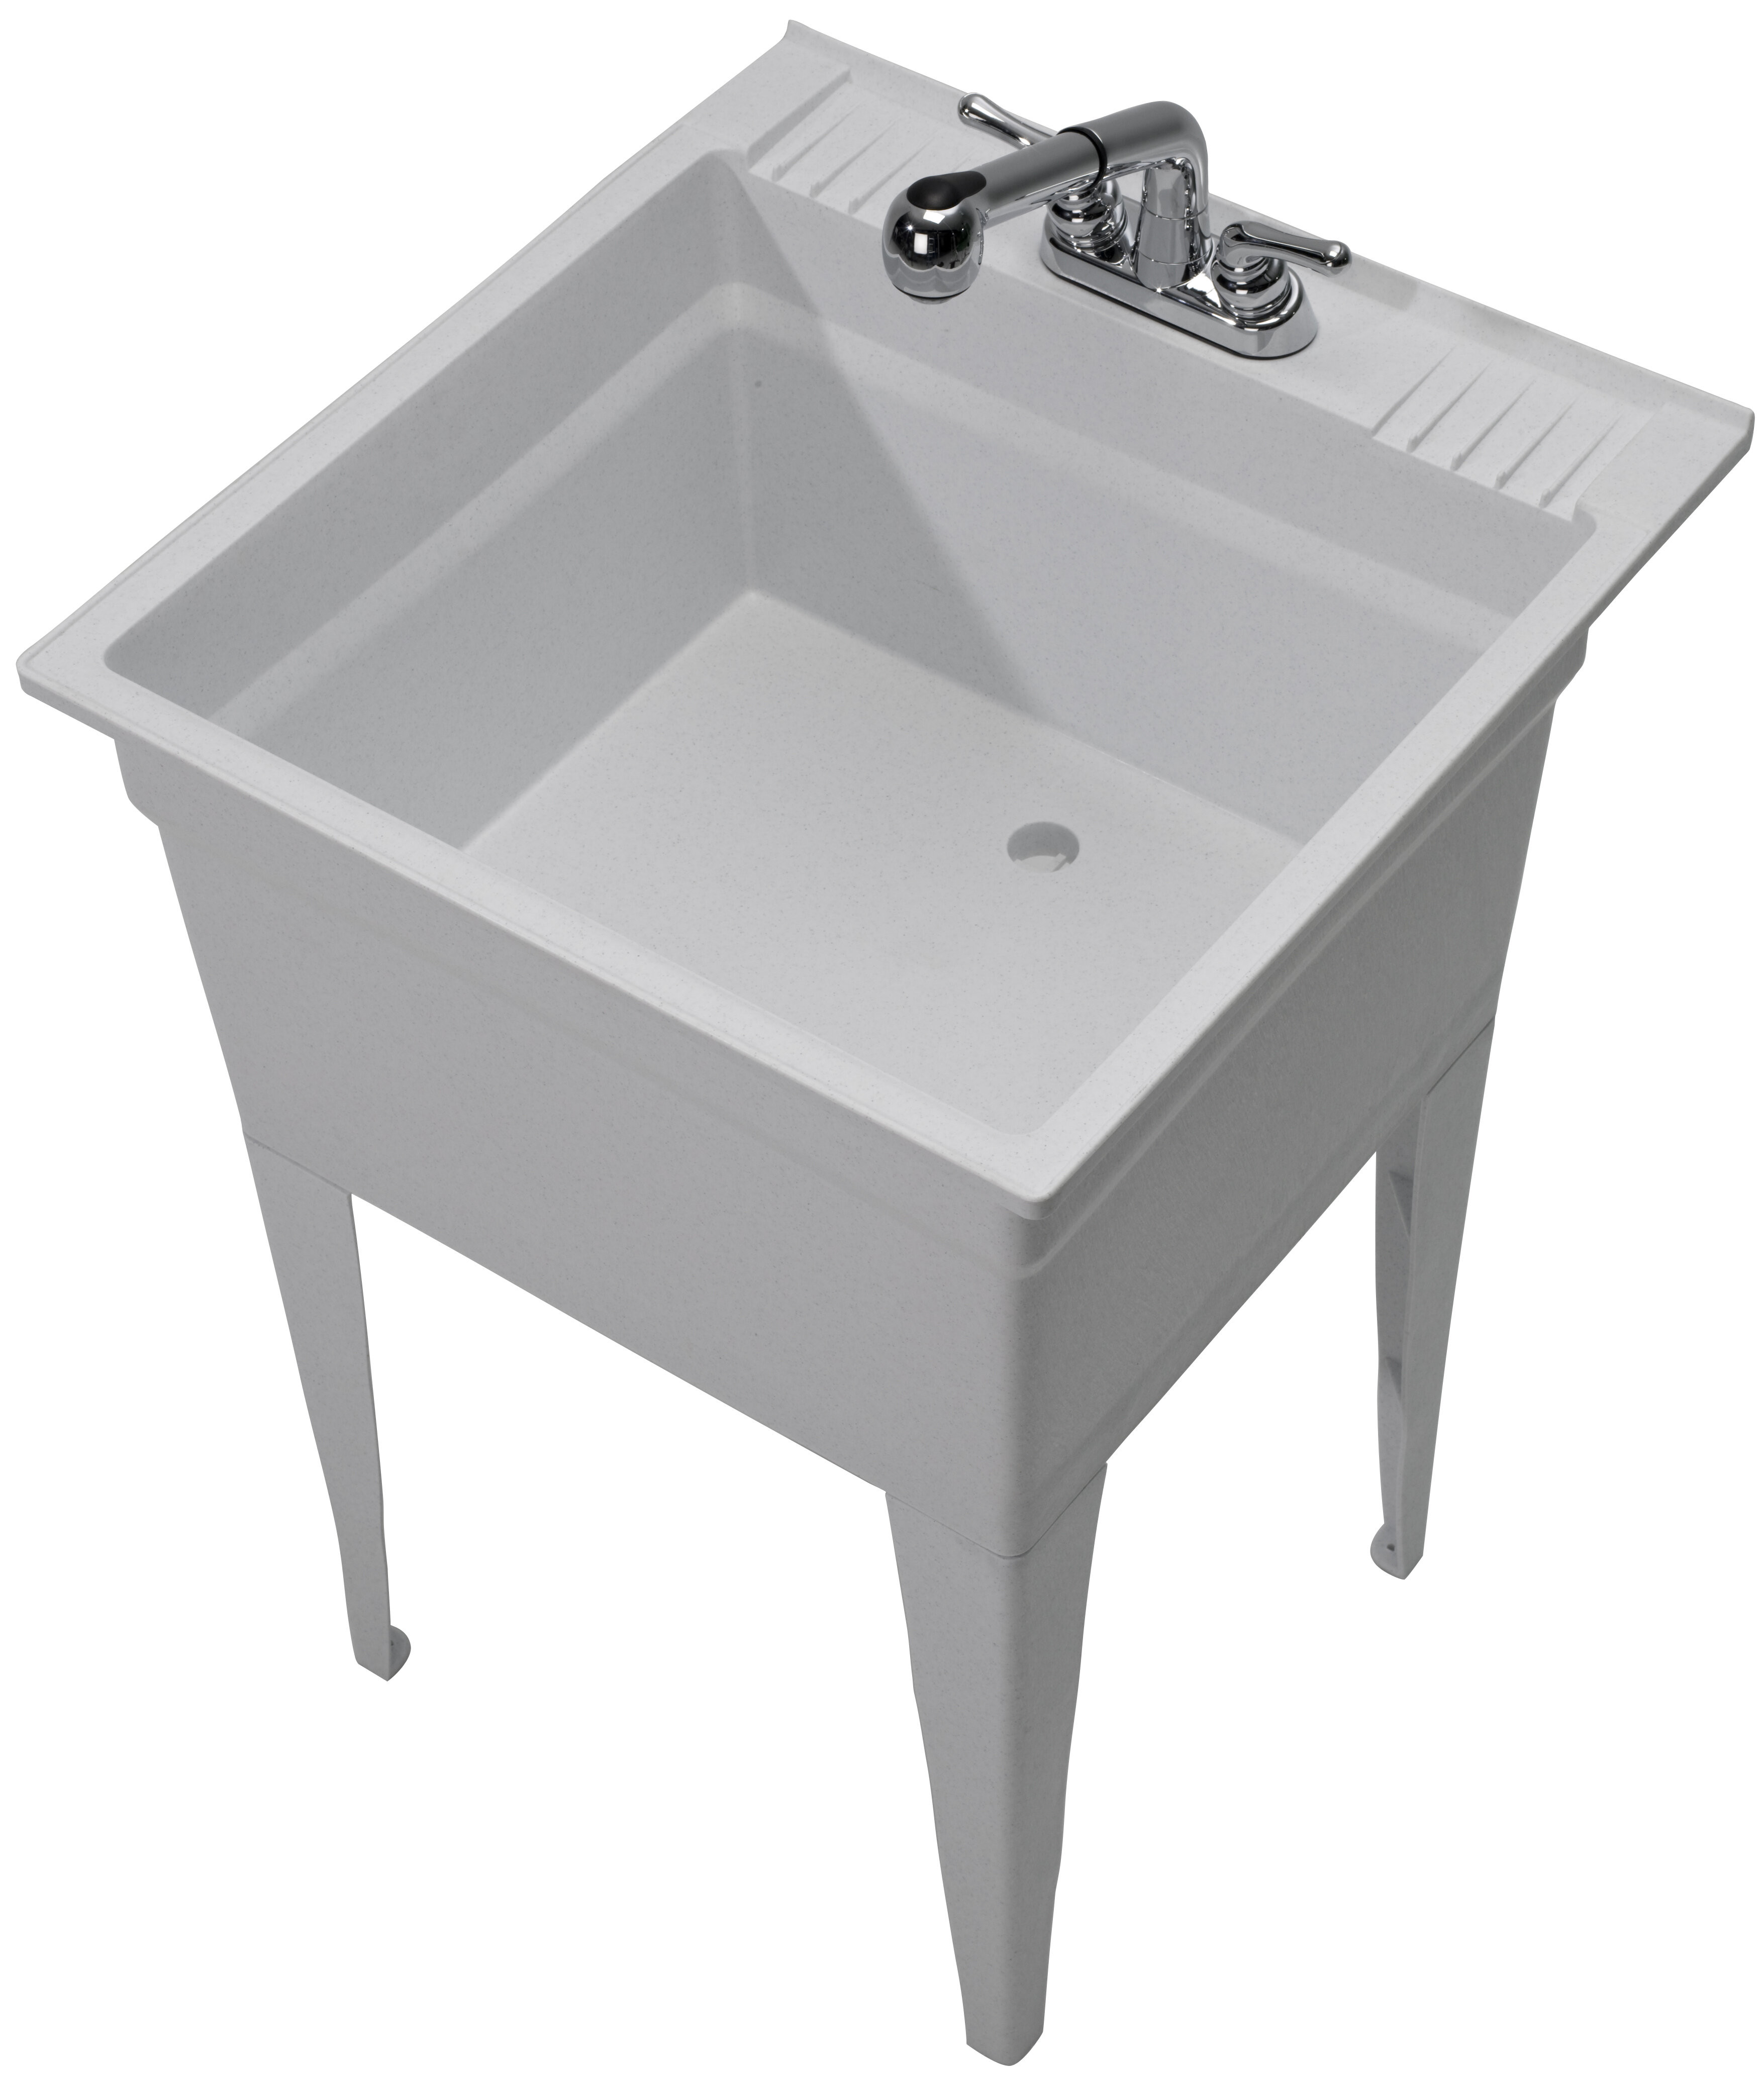 1960 32 02 Heavy Duty 23 75 X 24 Freestanding Laundry Sink With Faucet